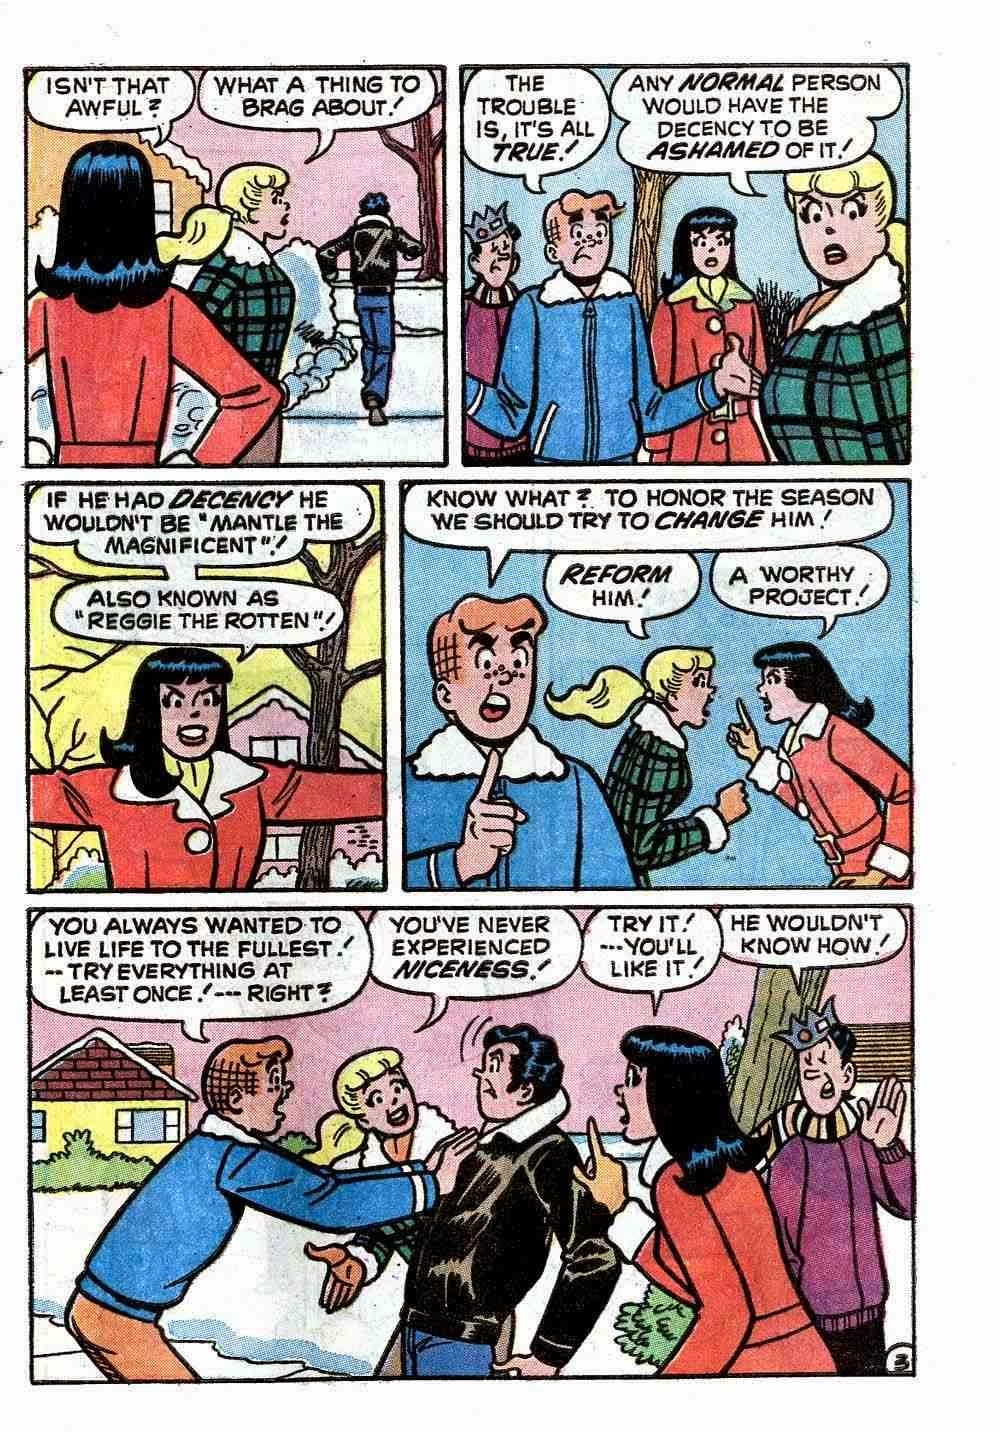 archie does